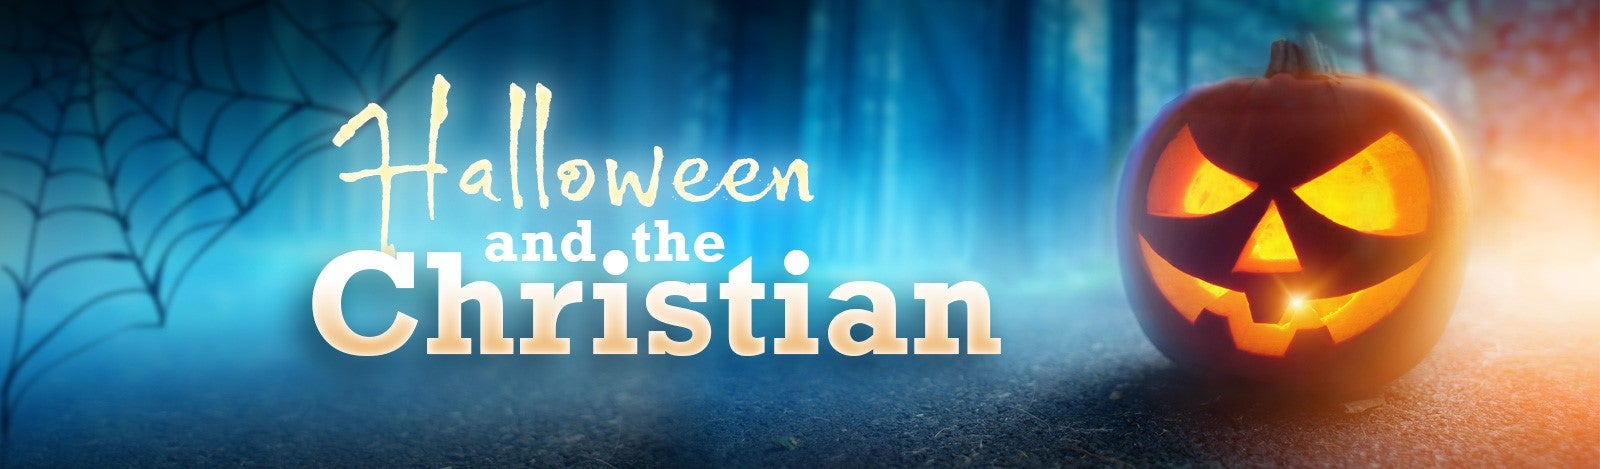 Halloween and the Christian